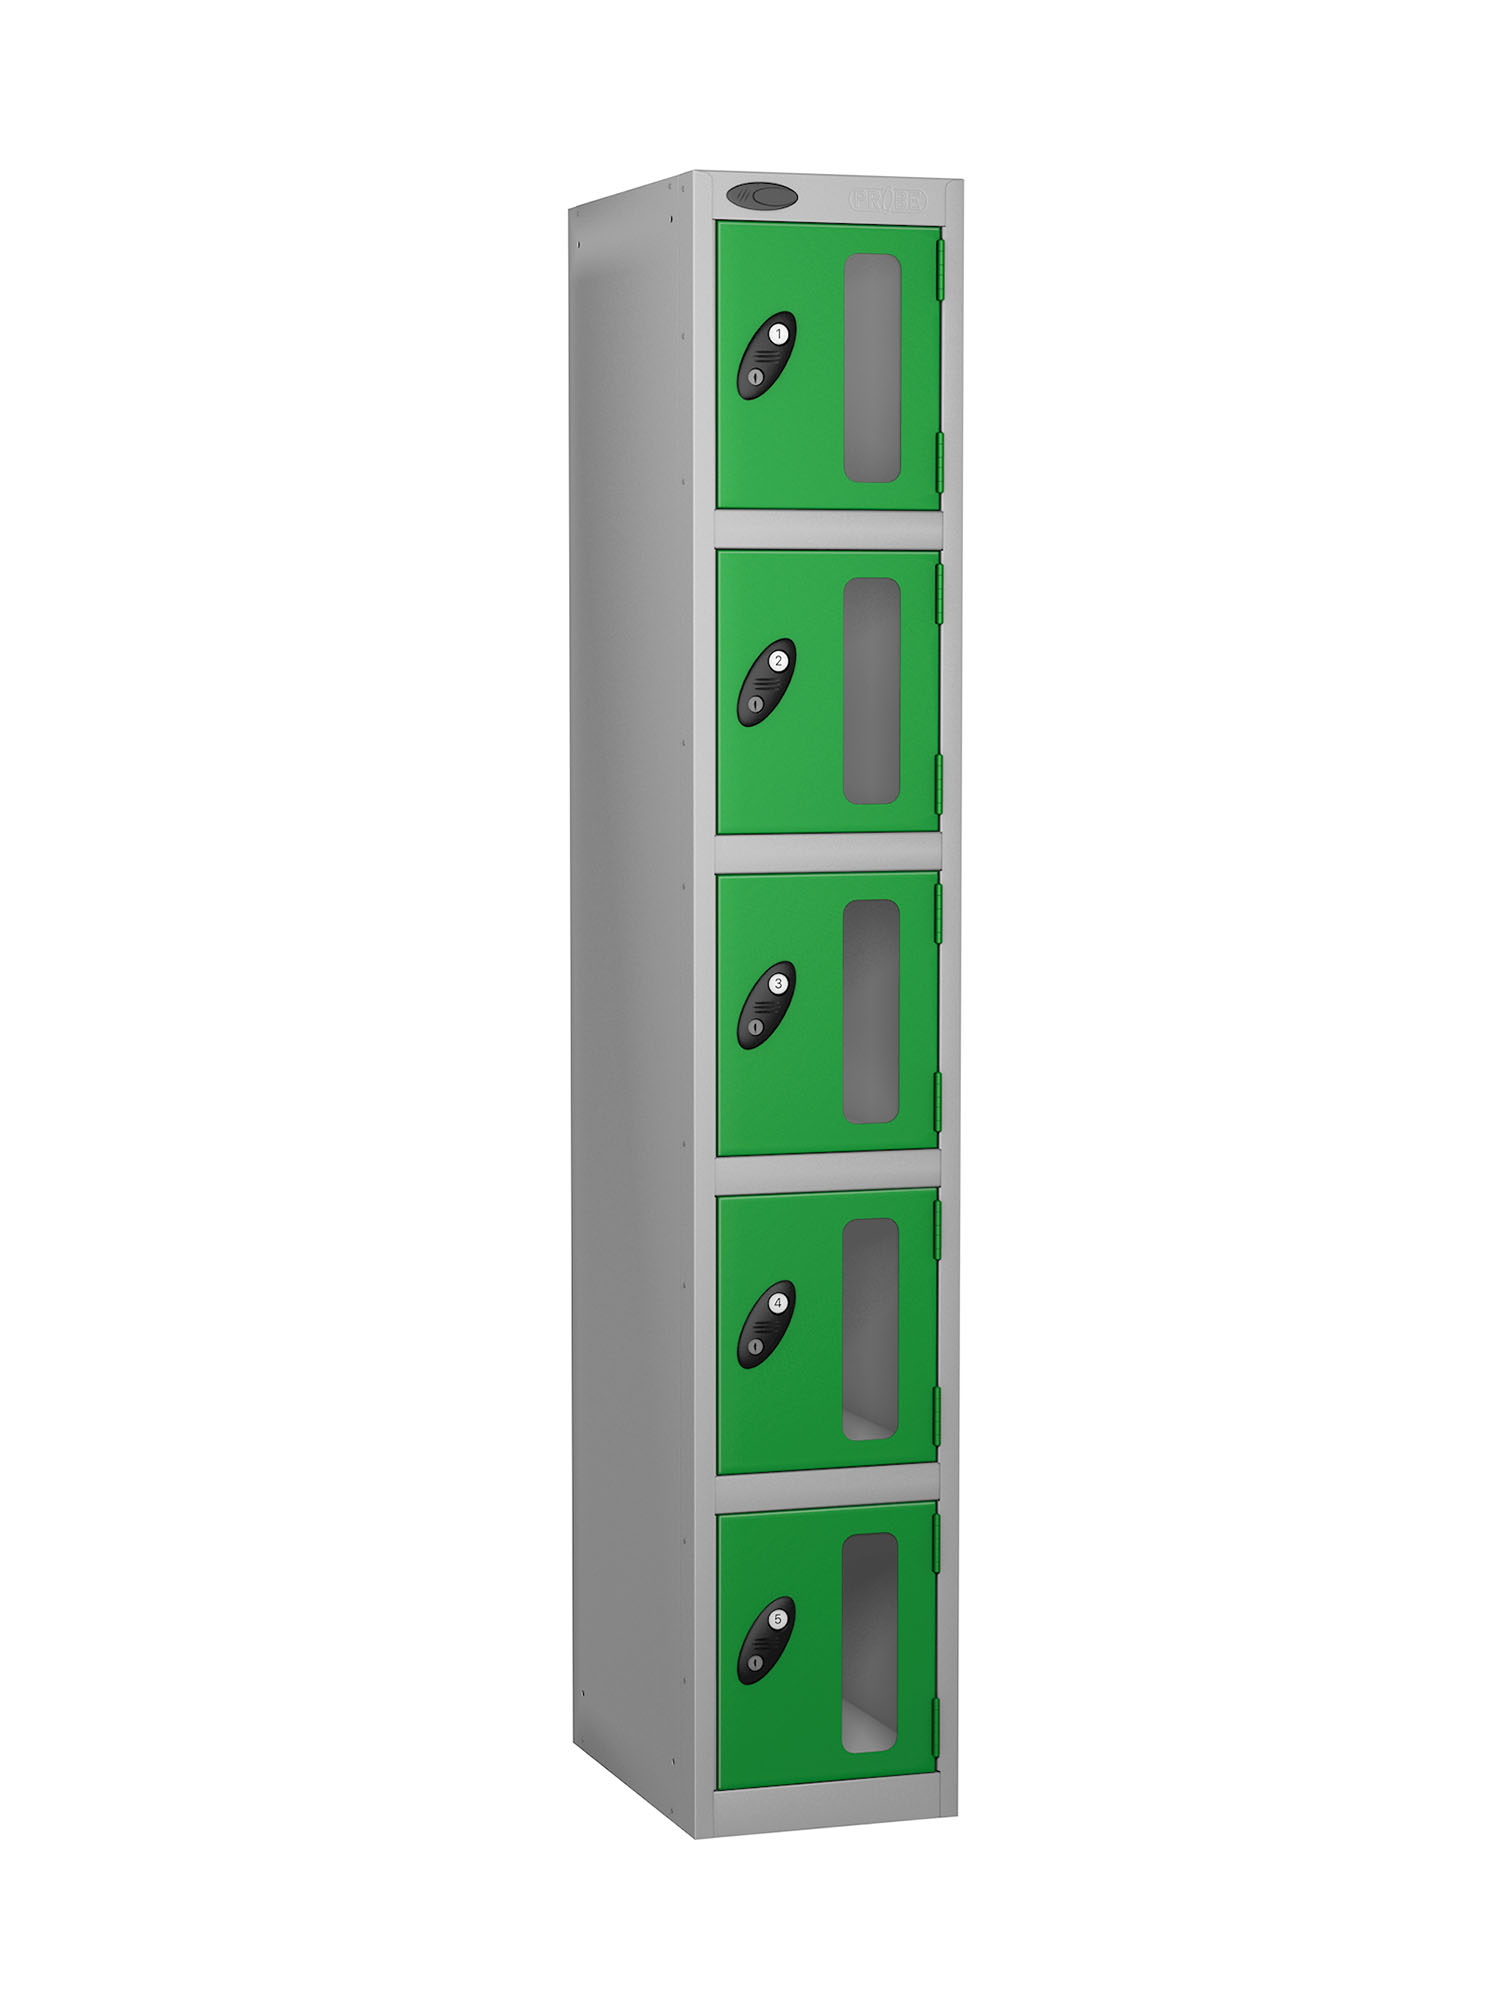 Probe 5 doors vision panel anti-stock theft locker green